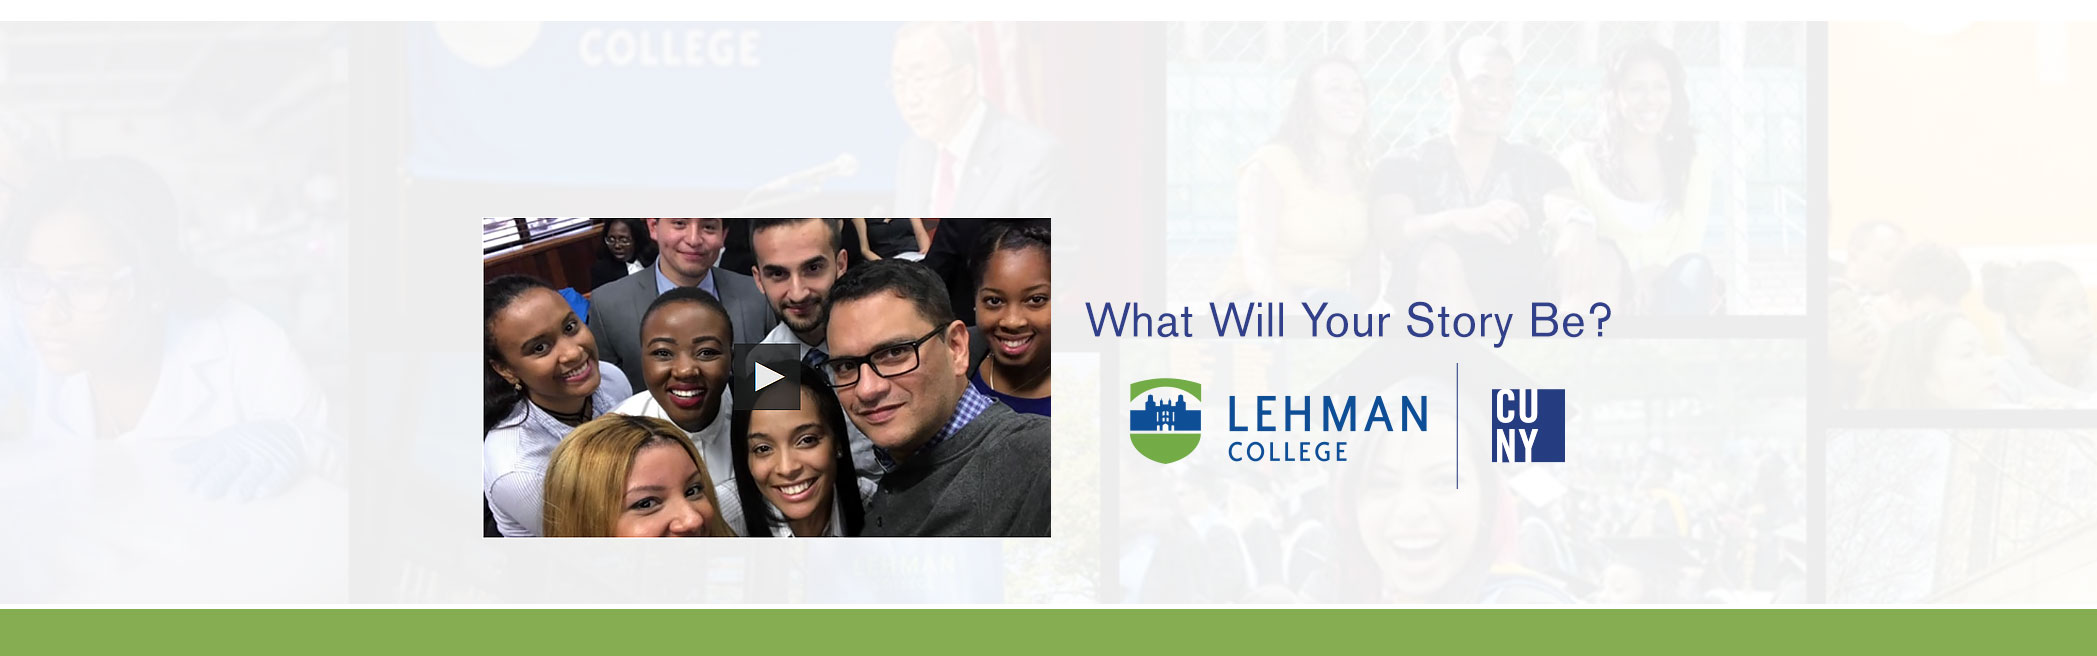 What Will Your Lehman Story Be?